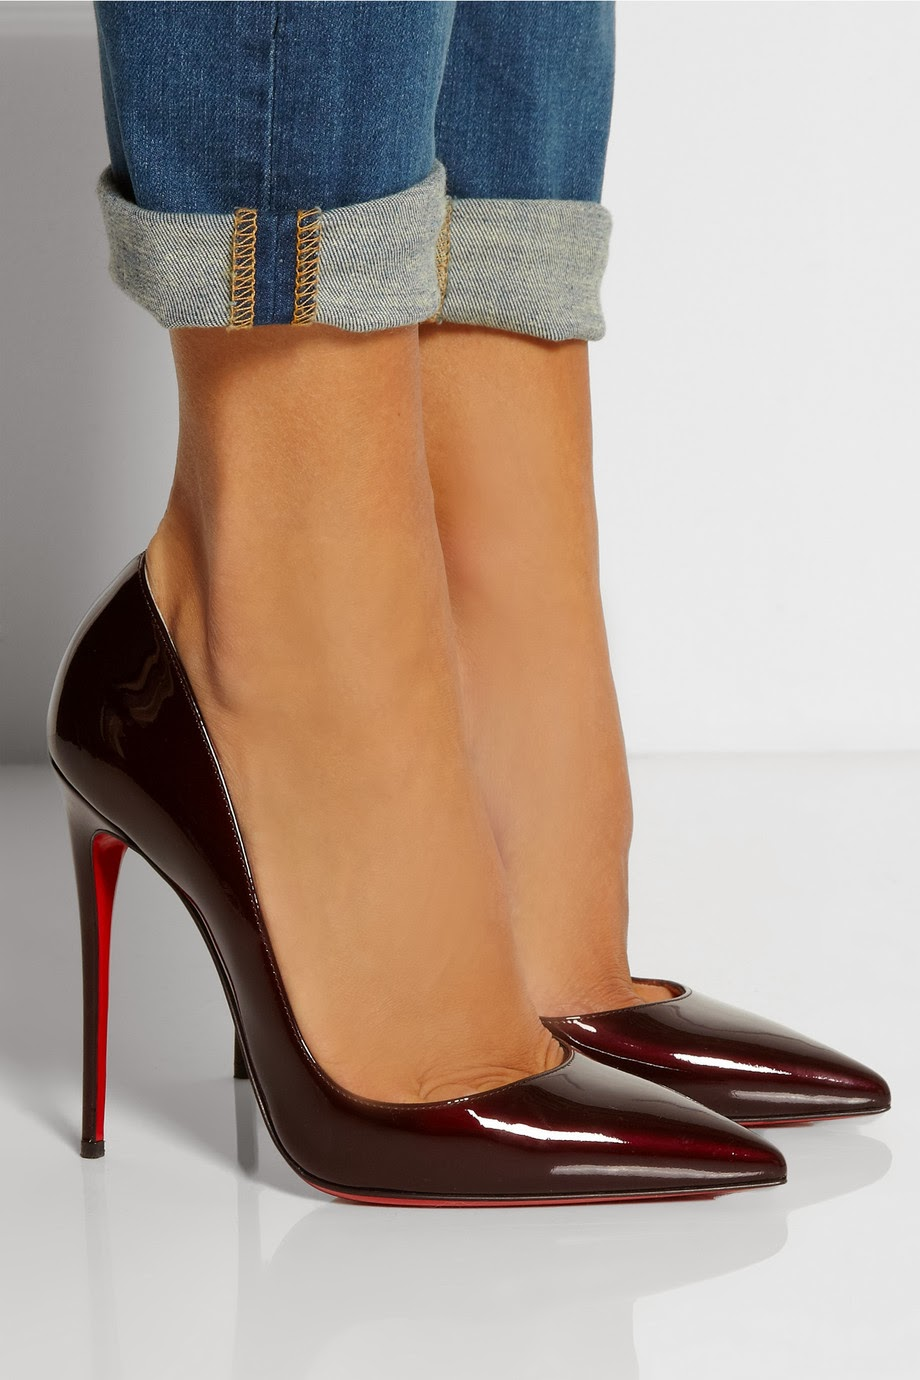 zapatillas christian louboutin 2013